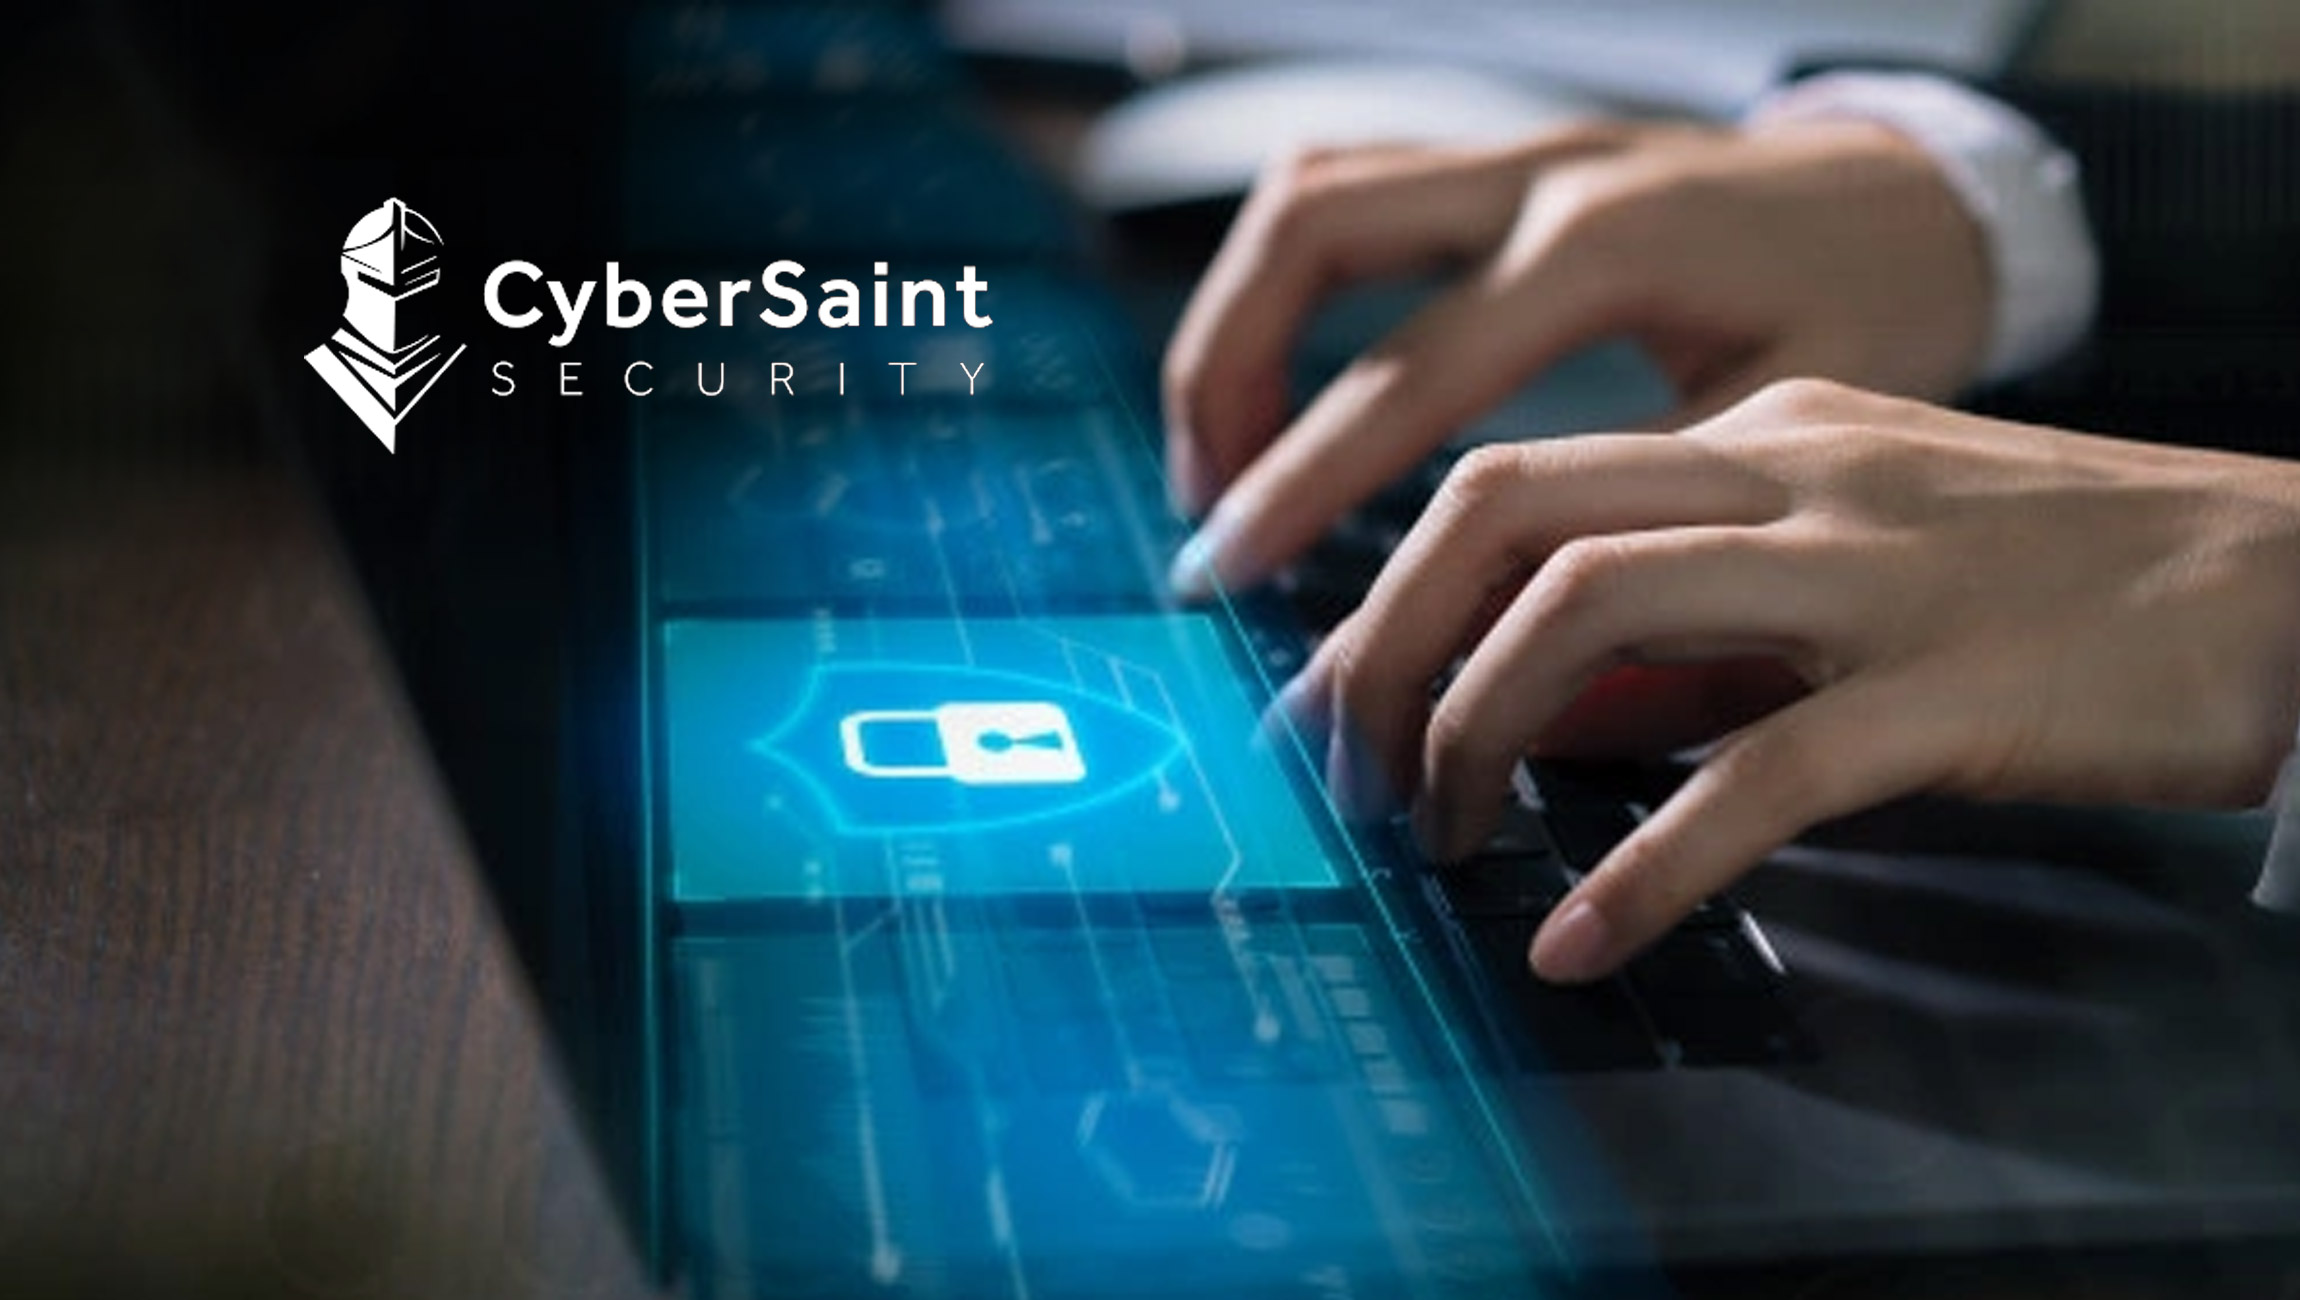 CyberSaint Wins Six Top Honors At 2021 Cybersecurity Excellence Awards